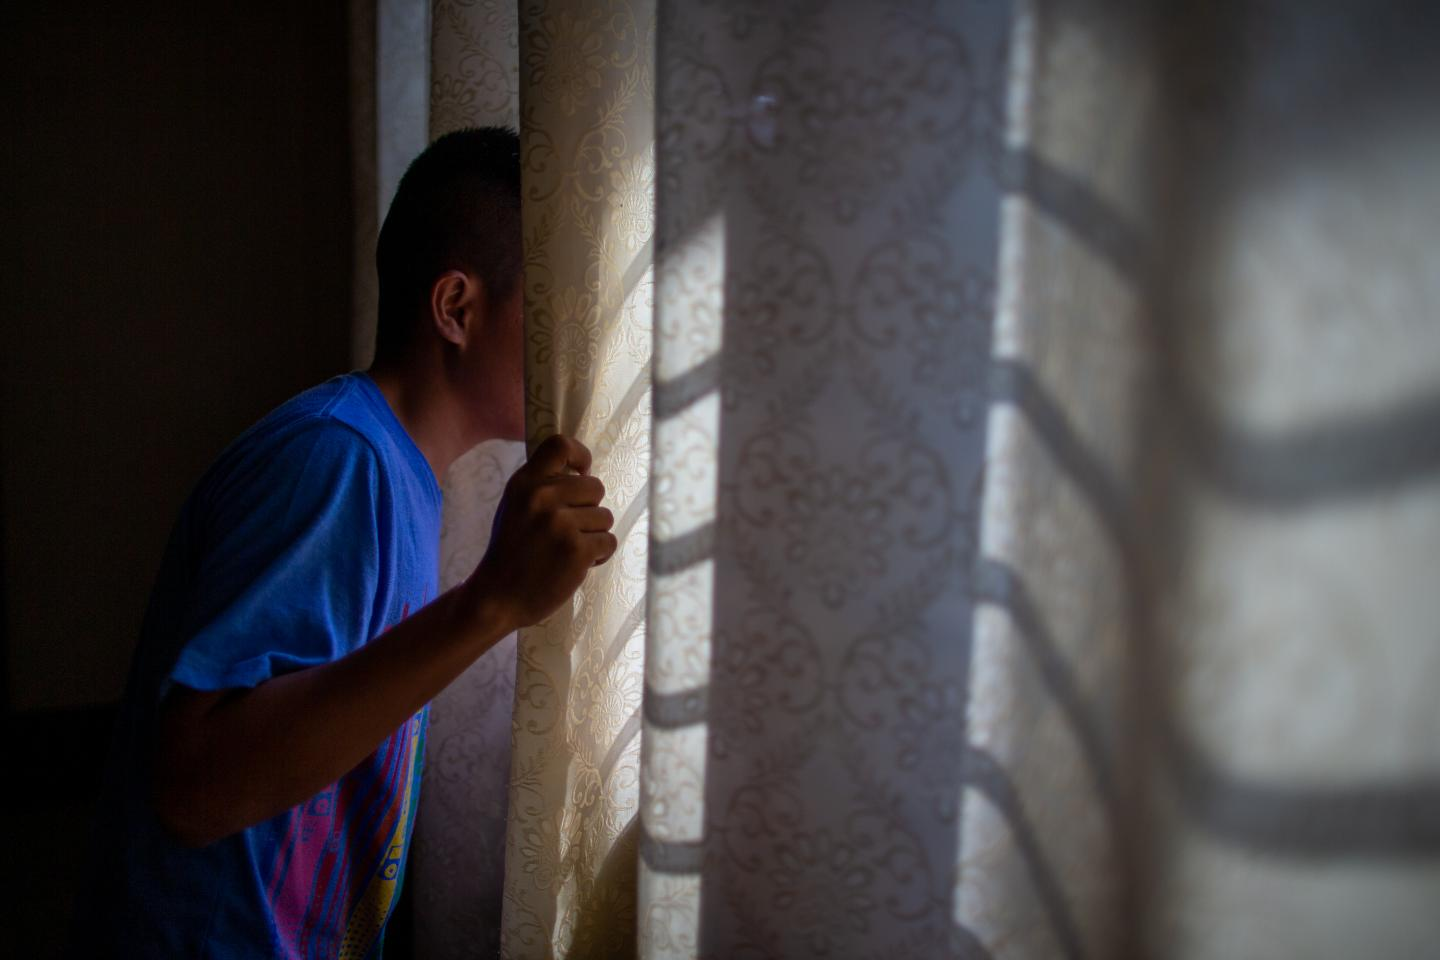 A child in a blue shirt looks out of a window, the curtain hiding his face